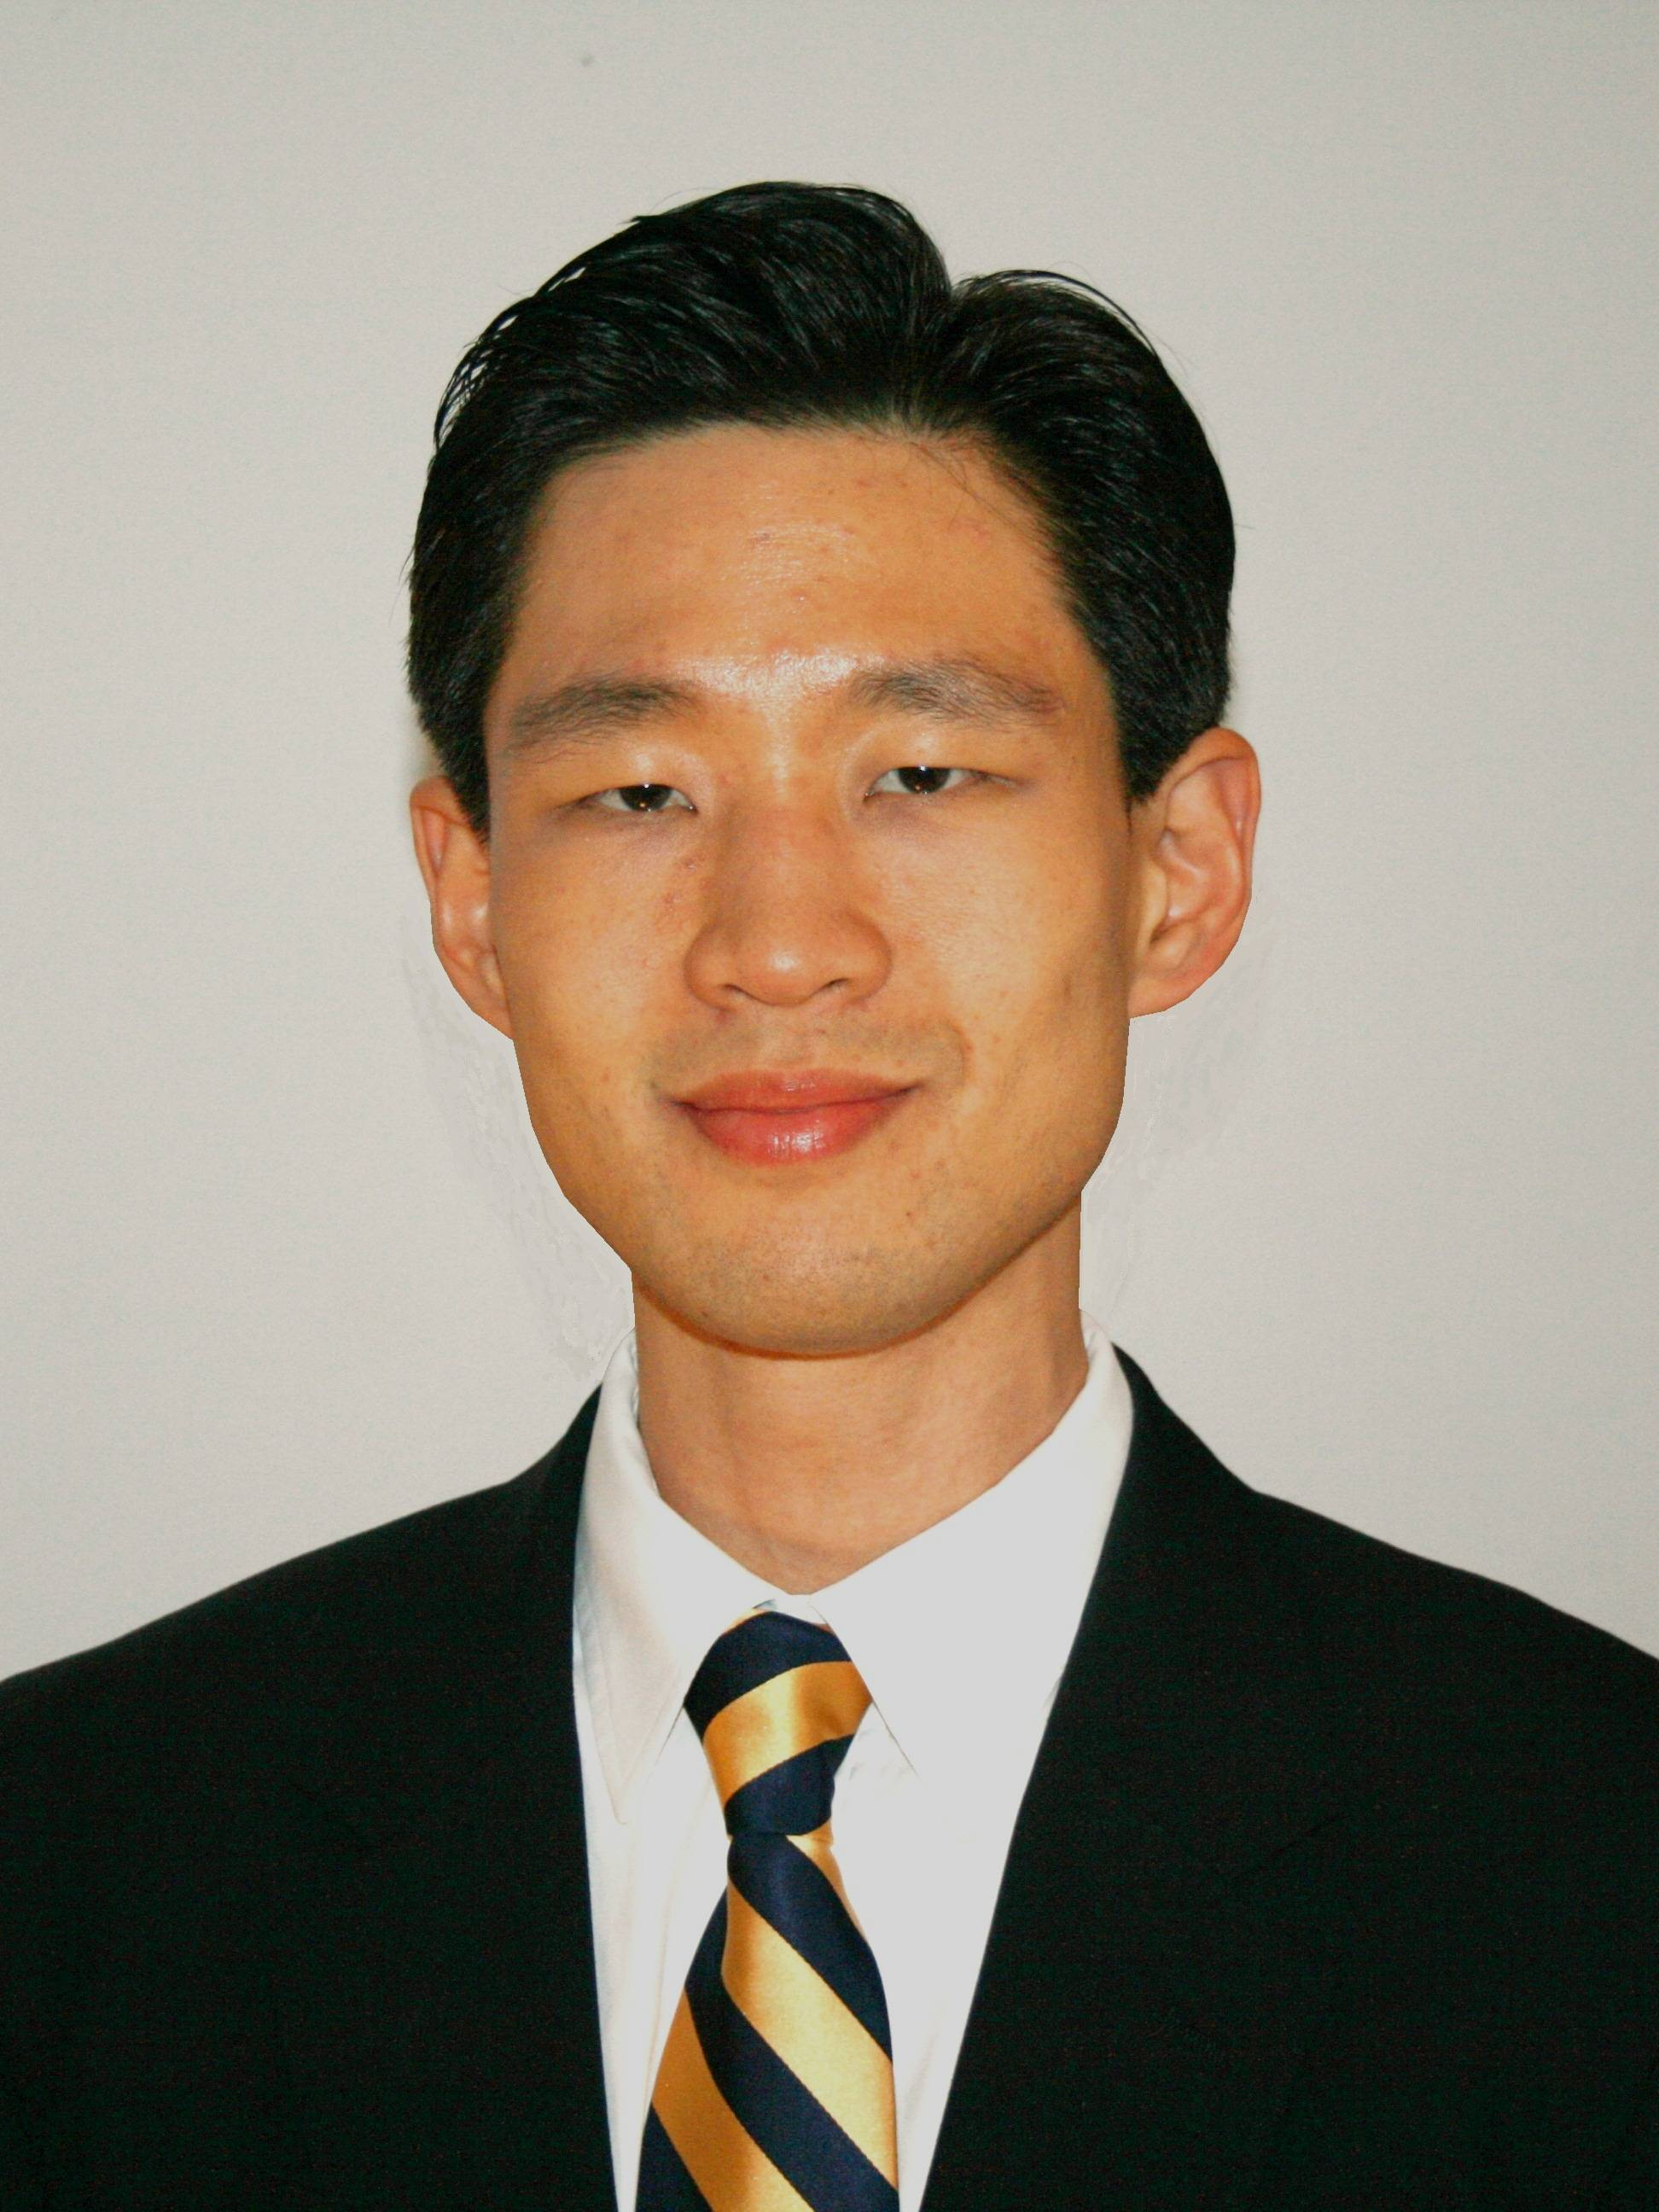 Abraham Lee, running for Maine Township Board (4